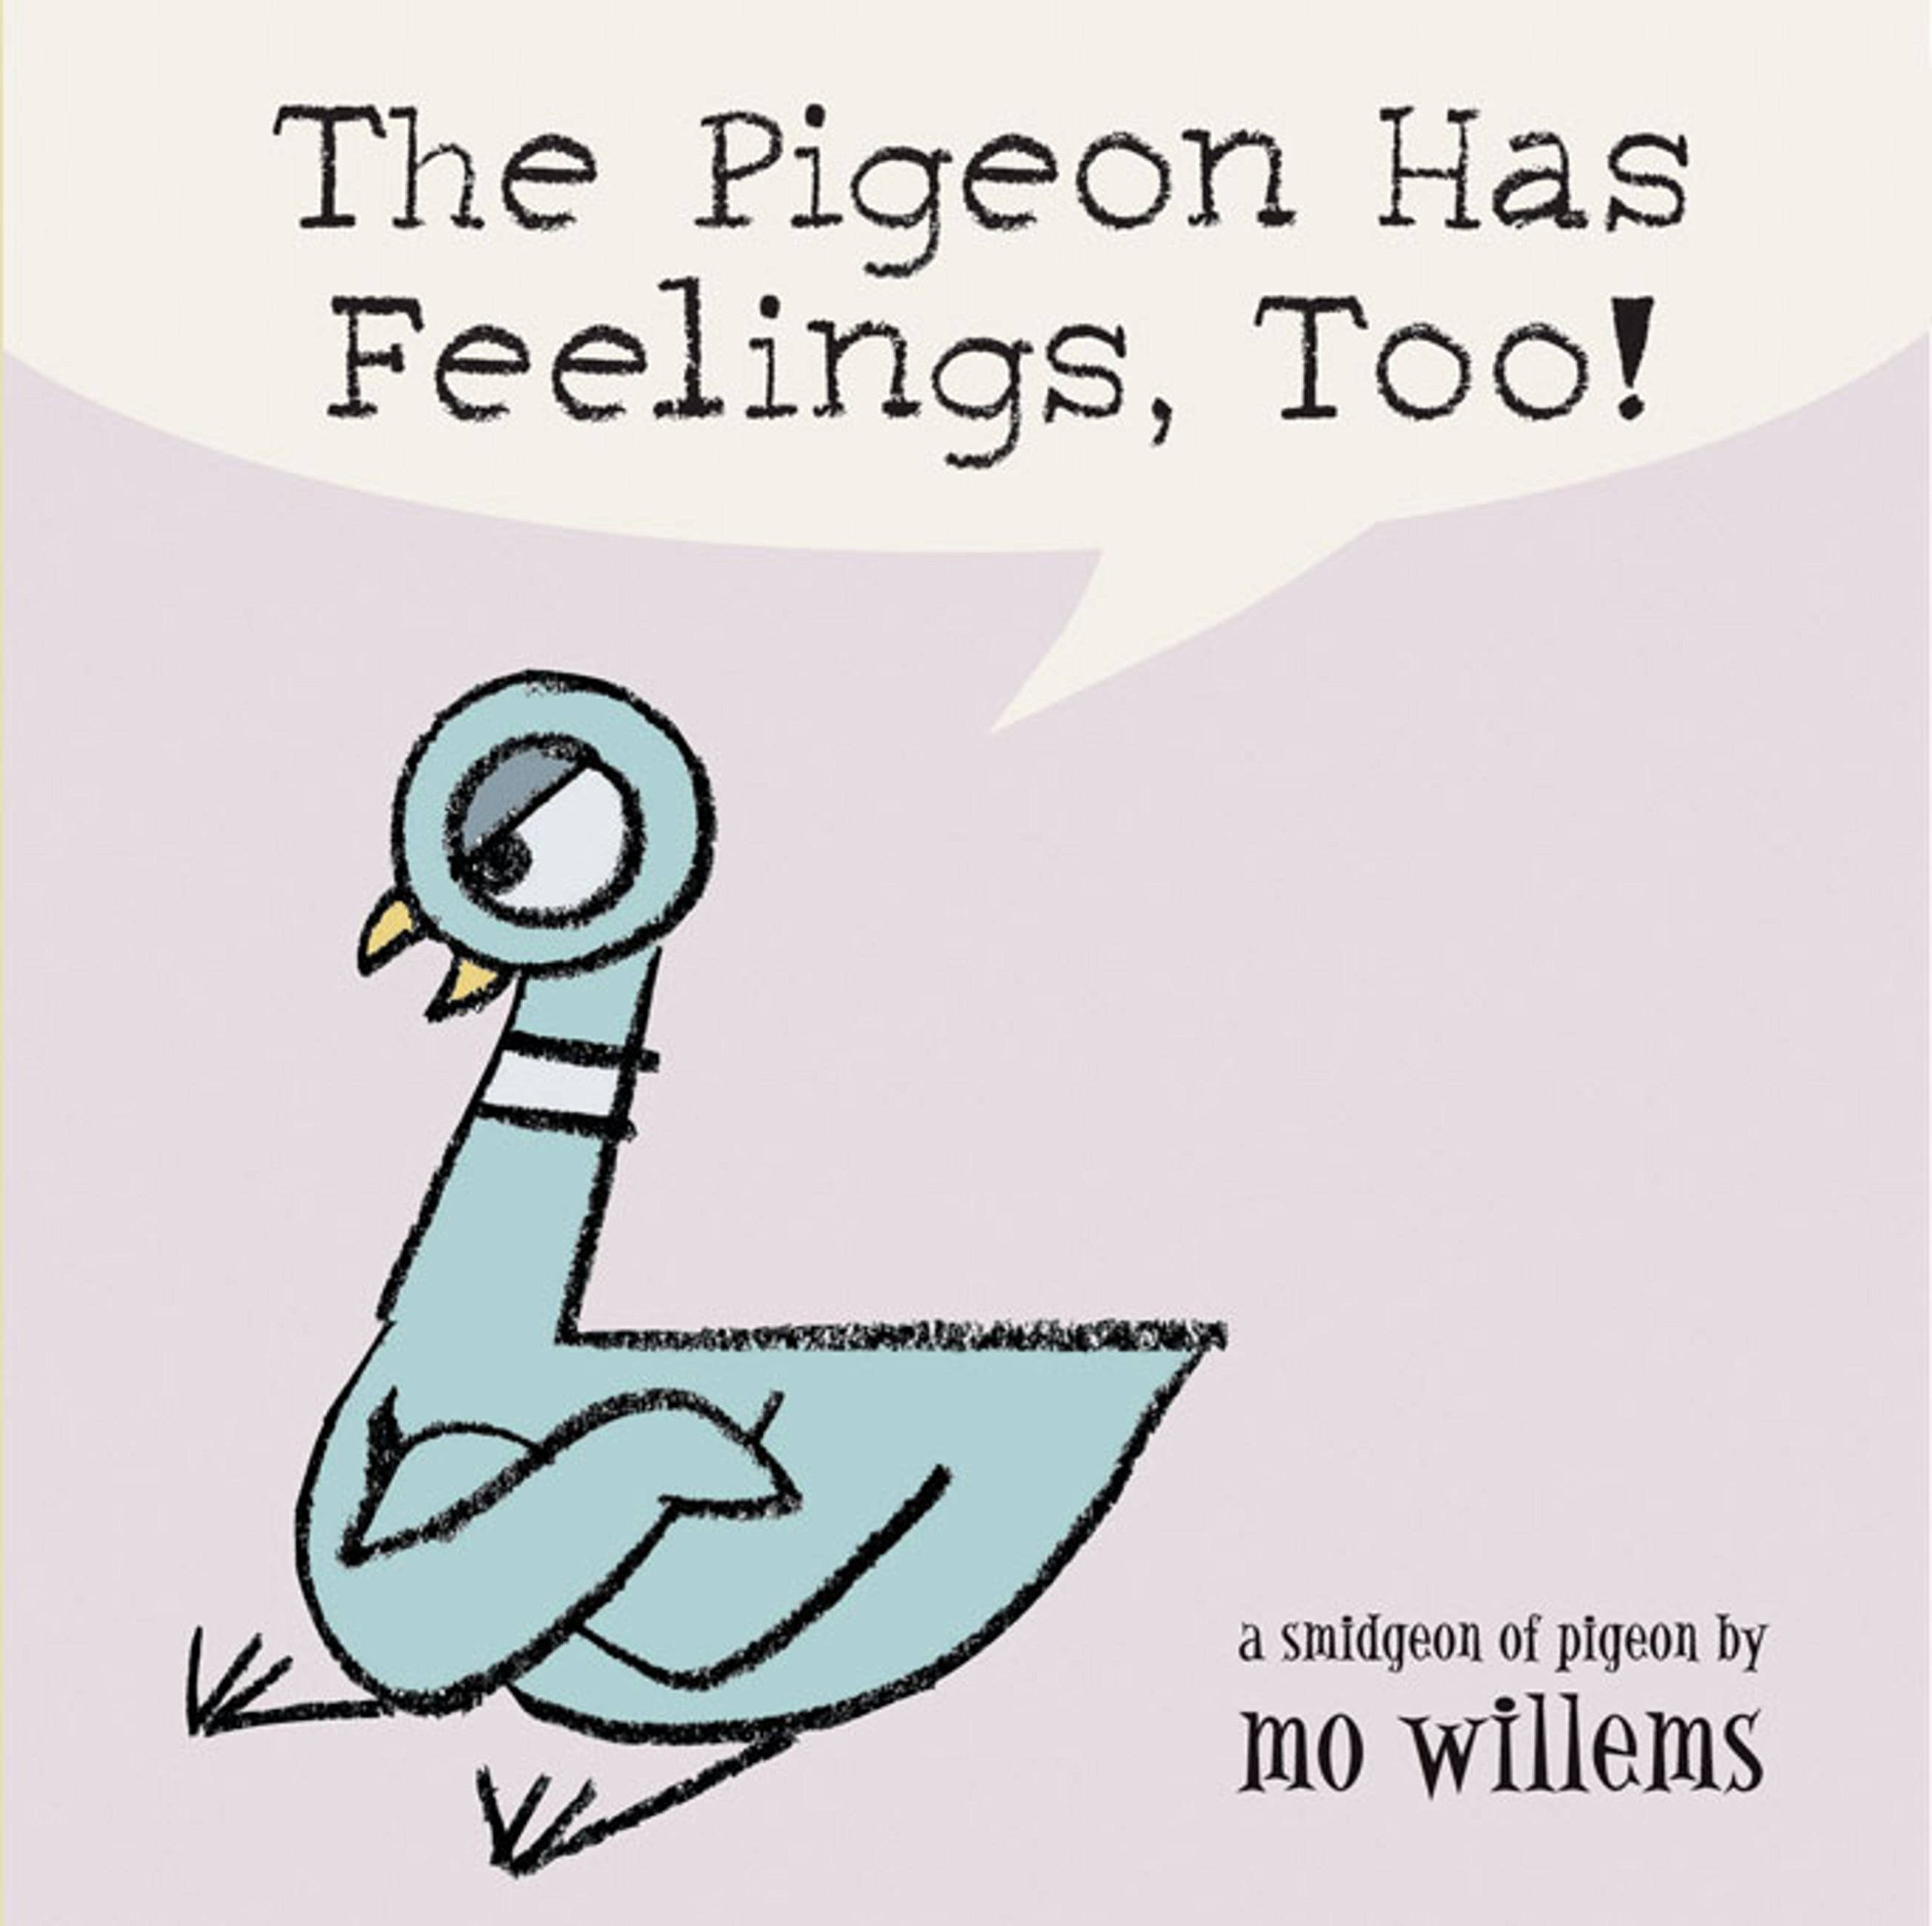 The pigeon has feelings too mo willems 9780786836505 amazon the pigeon has feelings too mo willems 9780786836505 amazon books fandeluxe Image collections